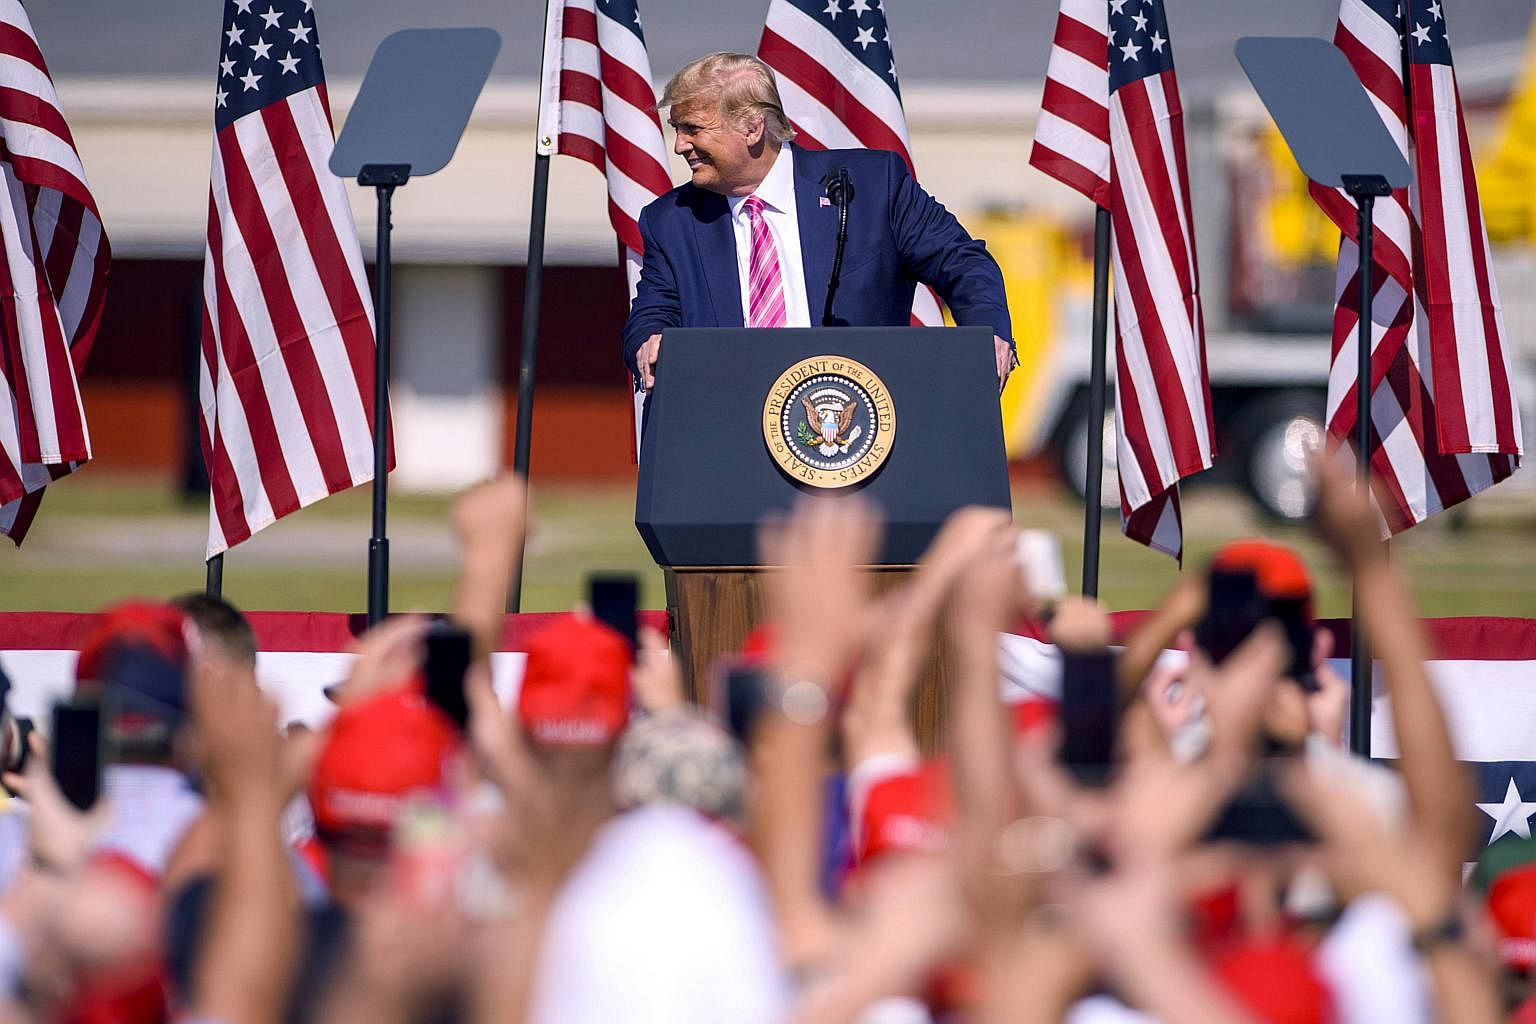 US President Donald Trump addresses a crowd during a campaign rally on Oct 24 2020 in Lumberton North Carolina